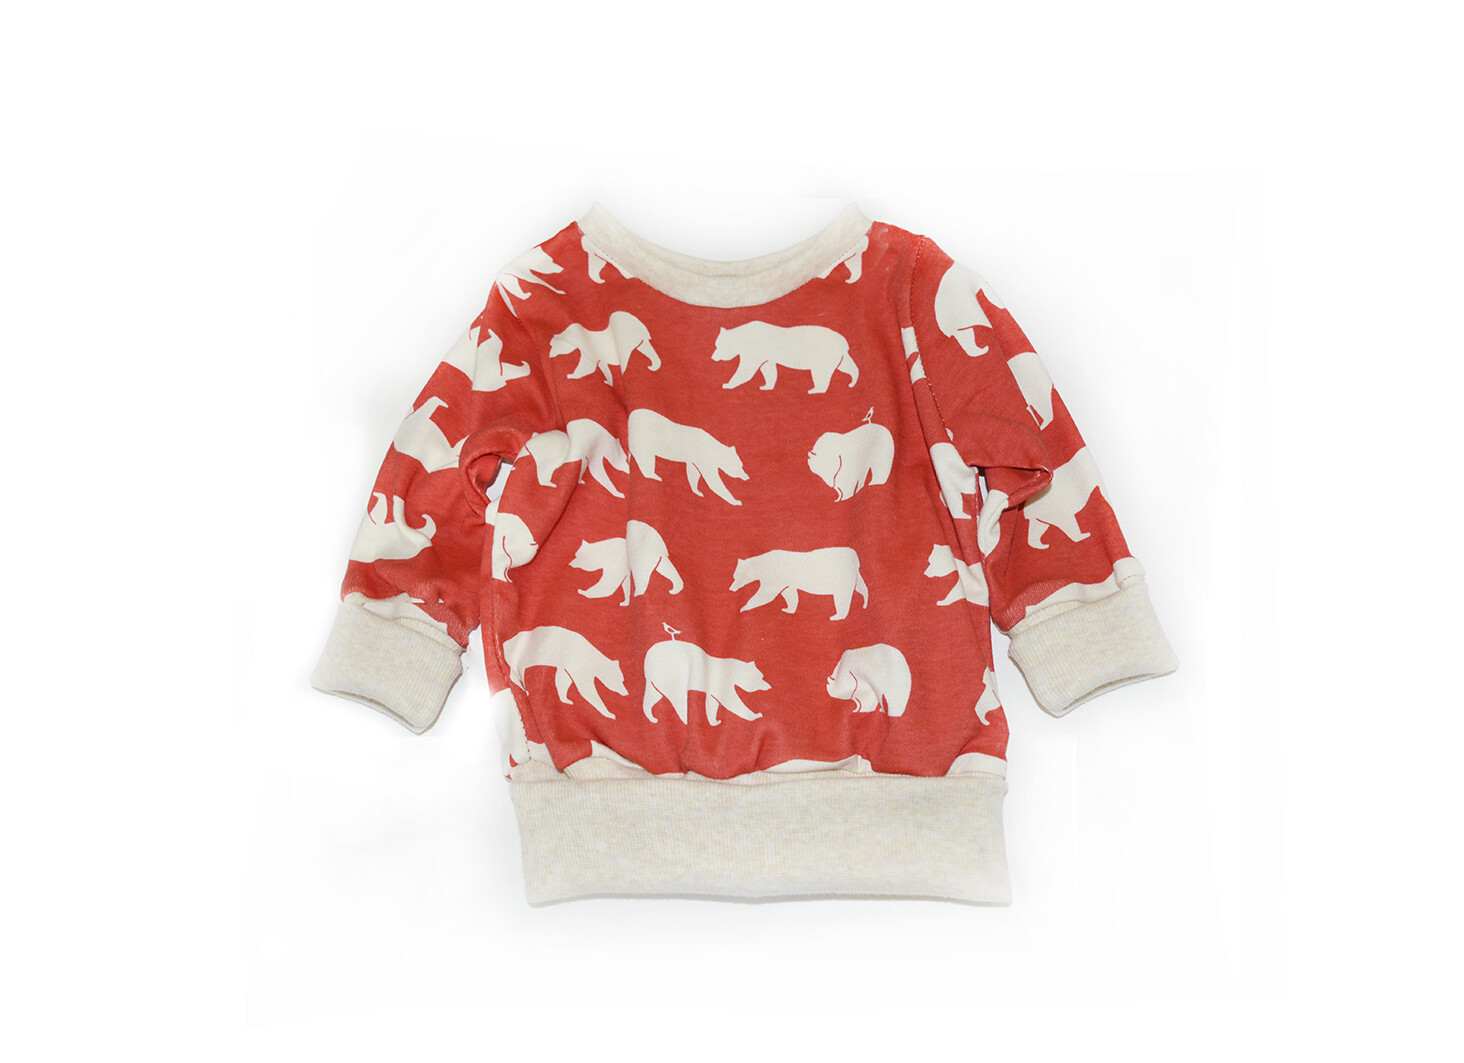 Little Sprout™ One-Size Grow with Me Crew Neck Sweatshirt - Red Bears - Cotton